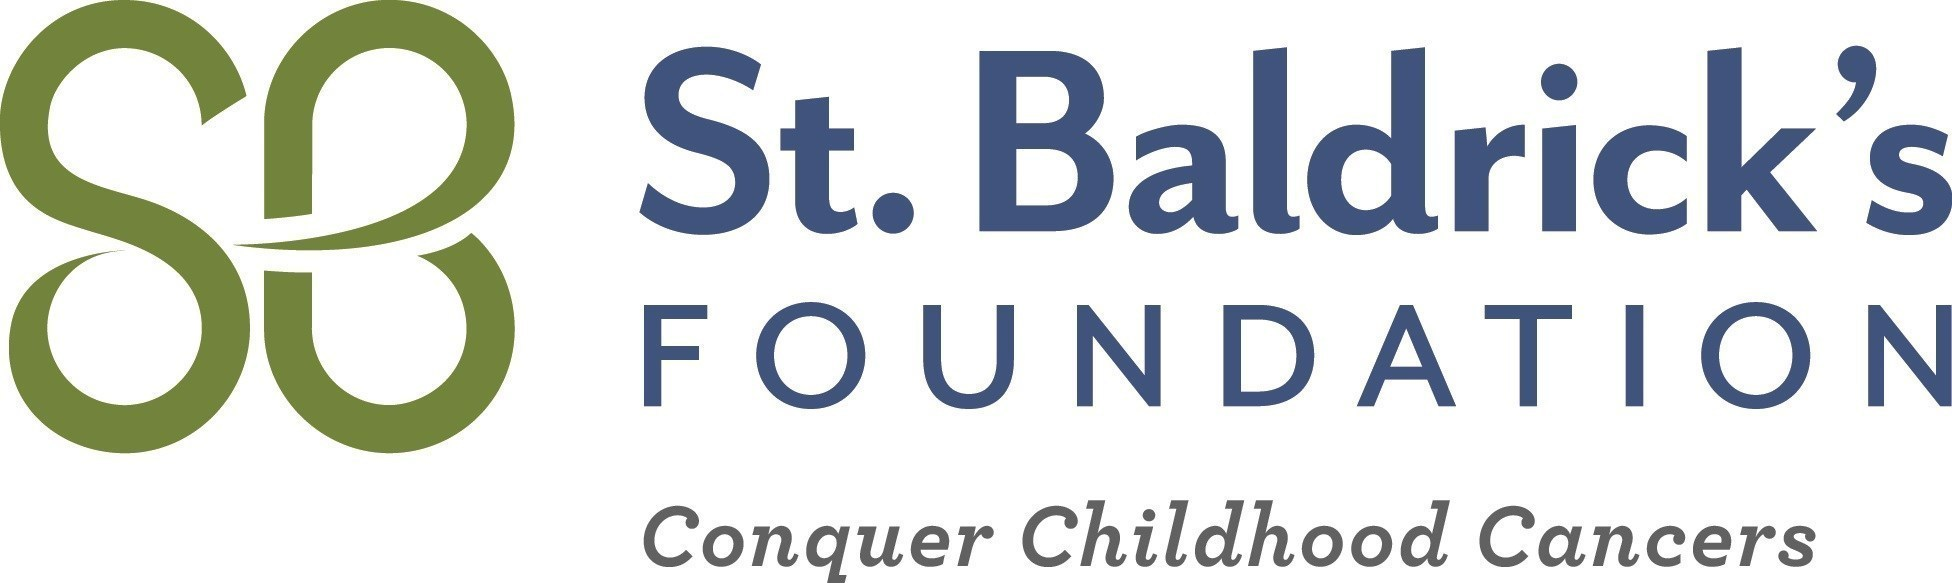 St. Baldrick's Foundation, the largest private funder of childhood cancer research grants. (PRNewsFoto/St. Baldrick's Foundation)